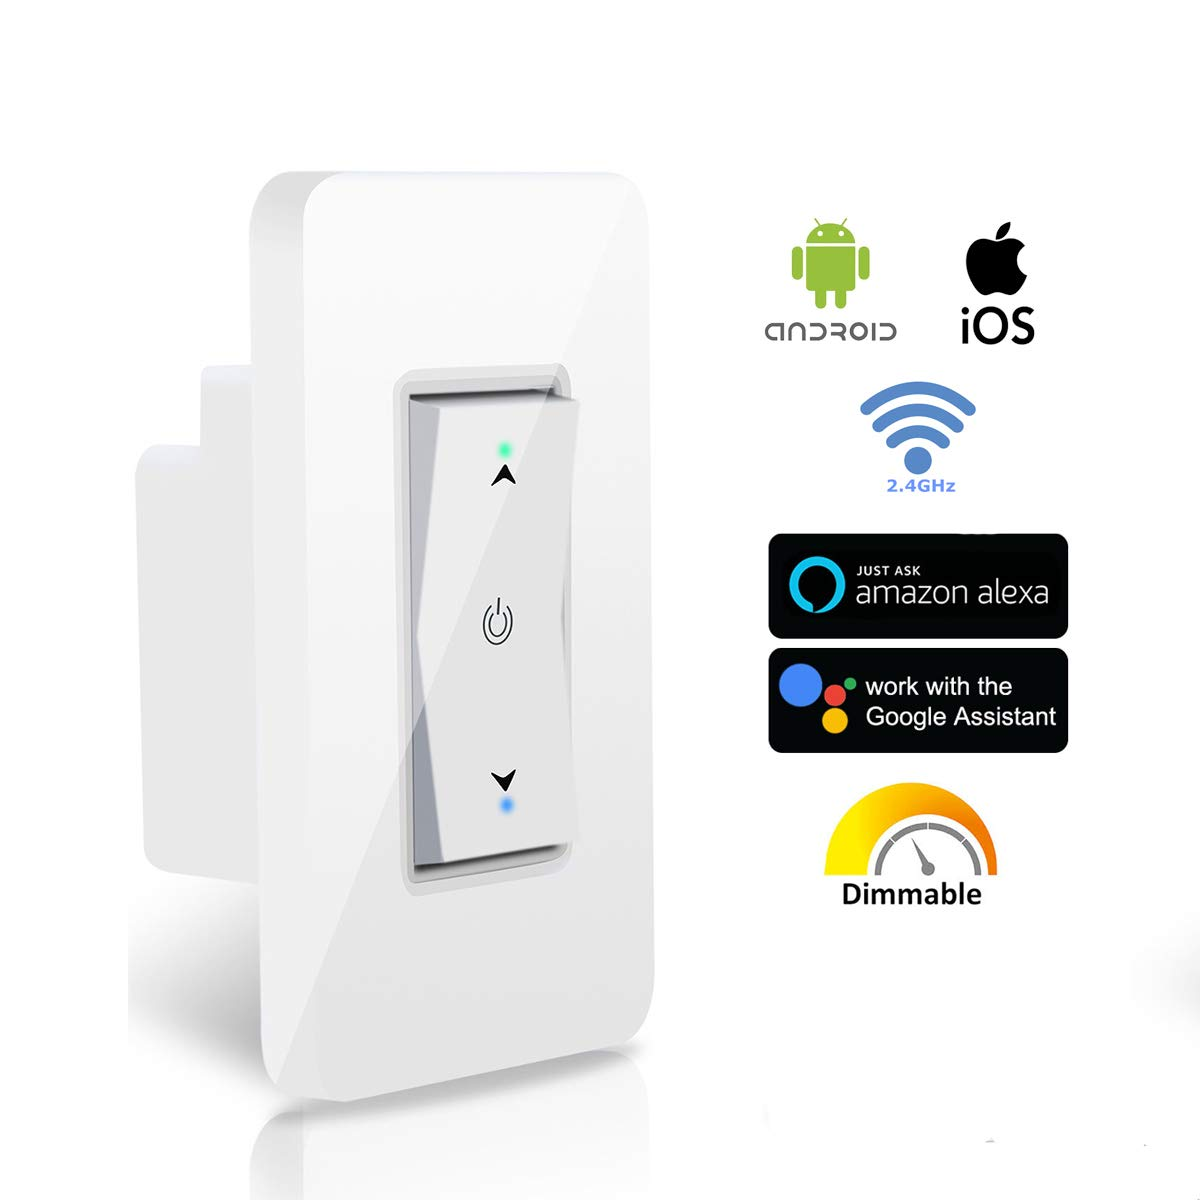 Wsiiroon WiFi Dimmer Switch, Smart Wall Light Switch Adjustable Brightness Wireless Remote Control Lighting with Timing Function Compatible with Amazon Alexa, Google Home - Neutral Wire Required